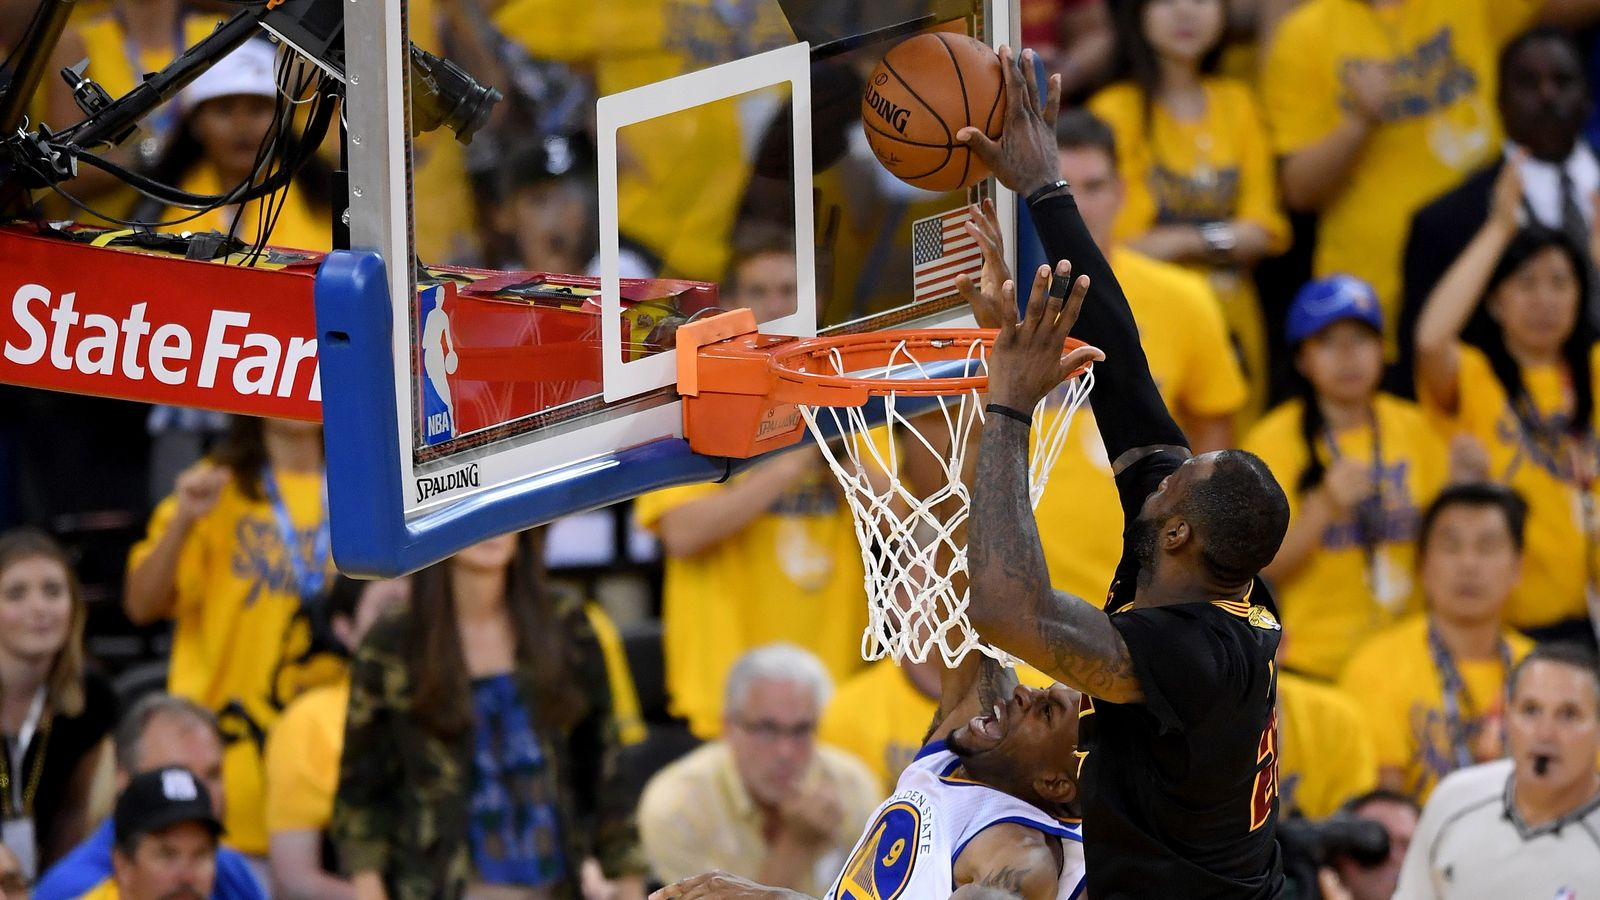 LeBron James-Elimination-game-LeBron James stoppa Iguodala